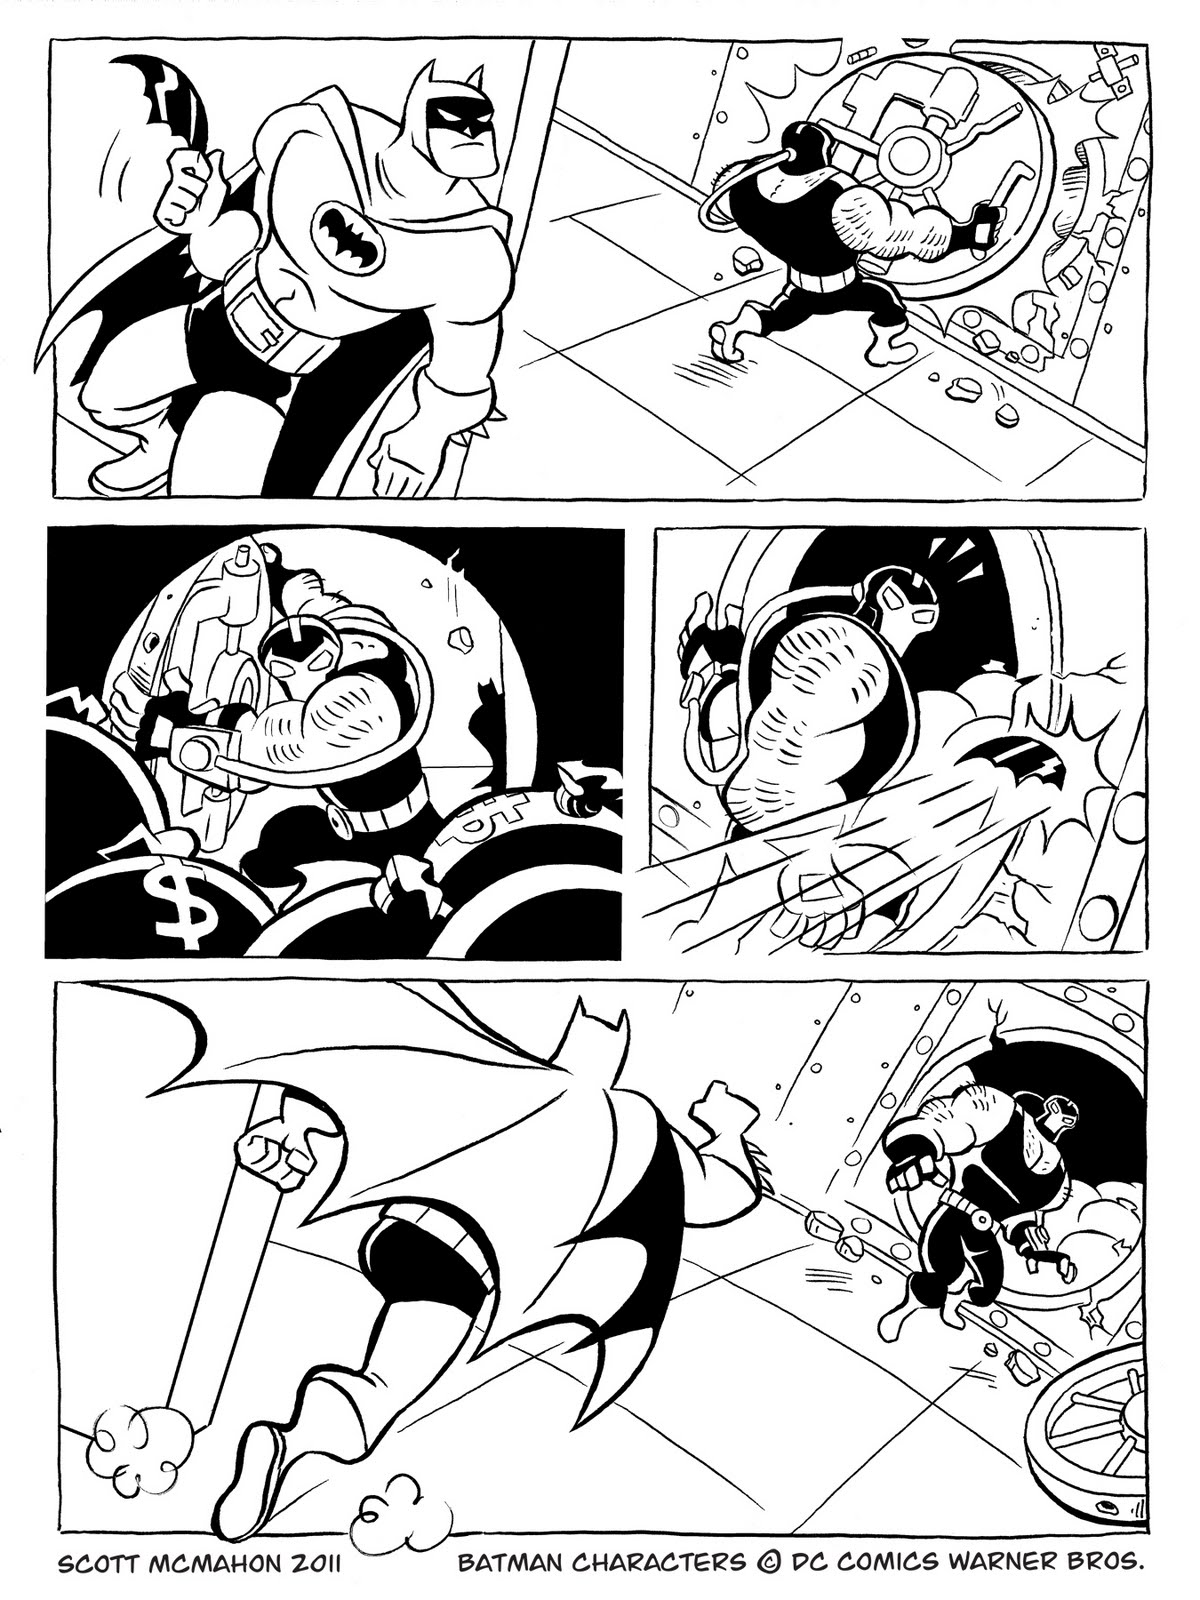 Colouring pages batman vs and comic strips on pinterest for Comic strip coloring pages